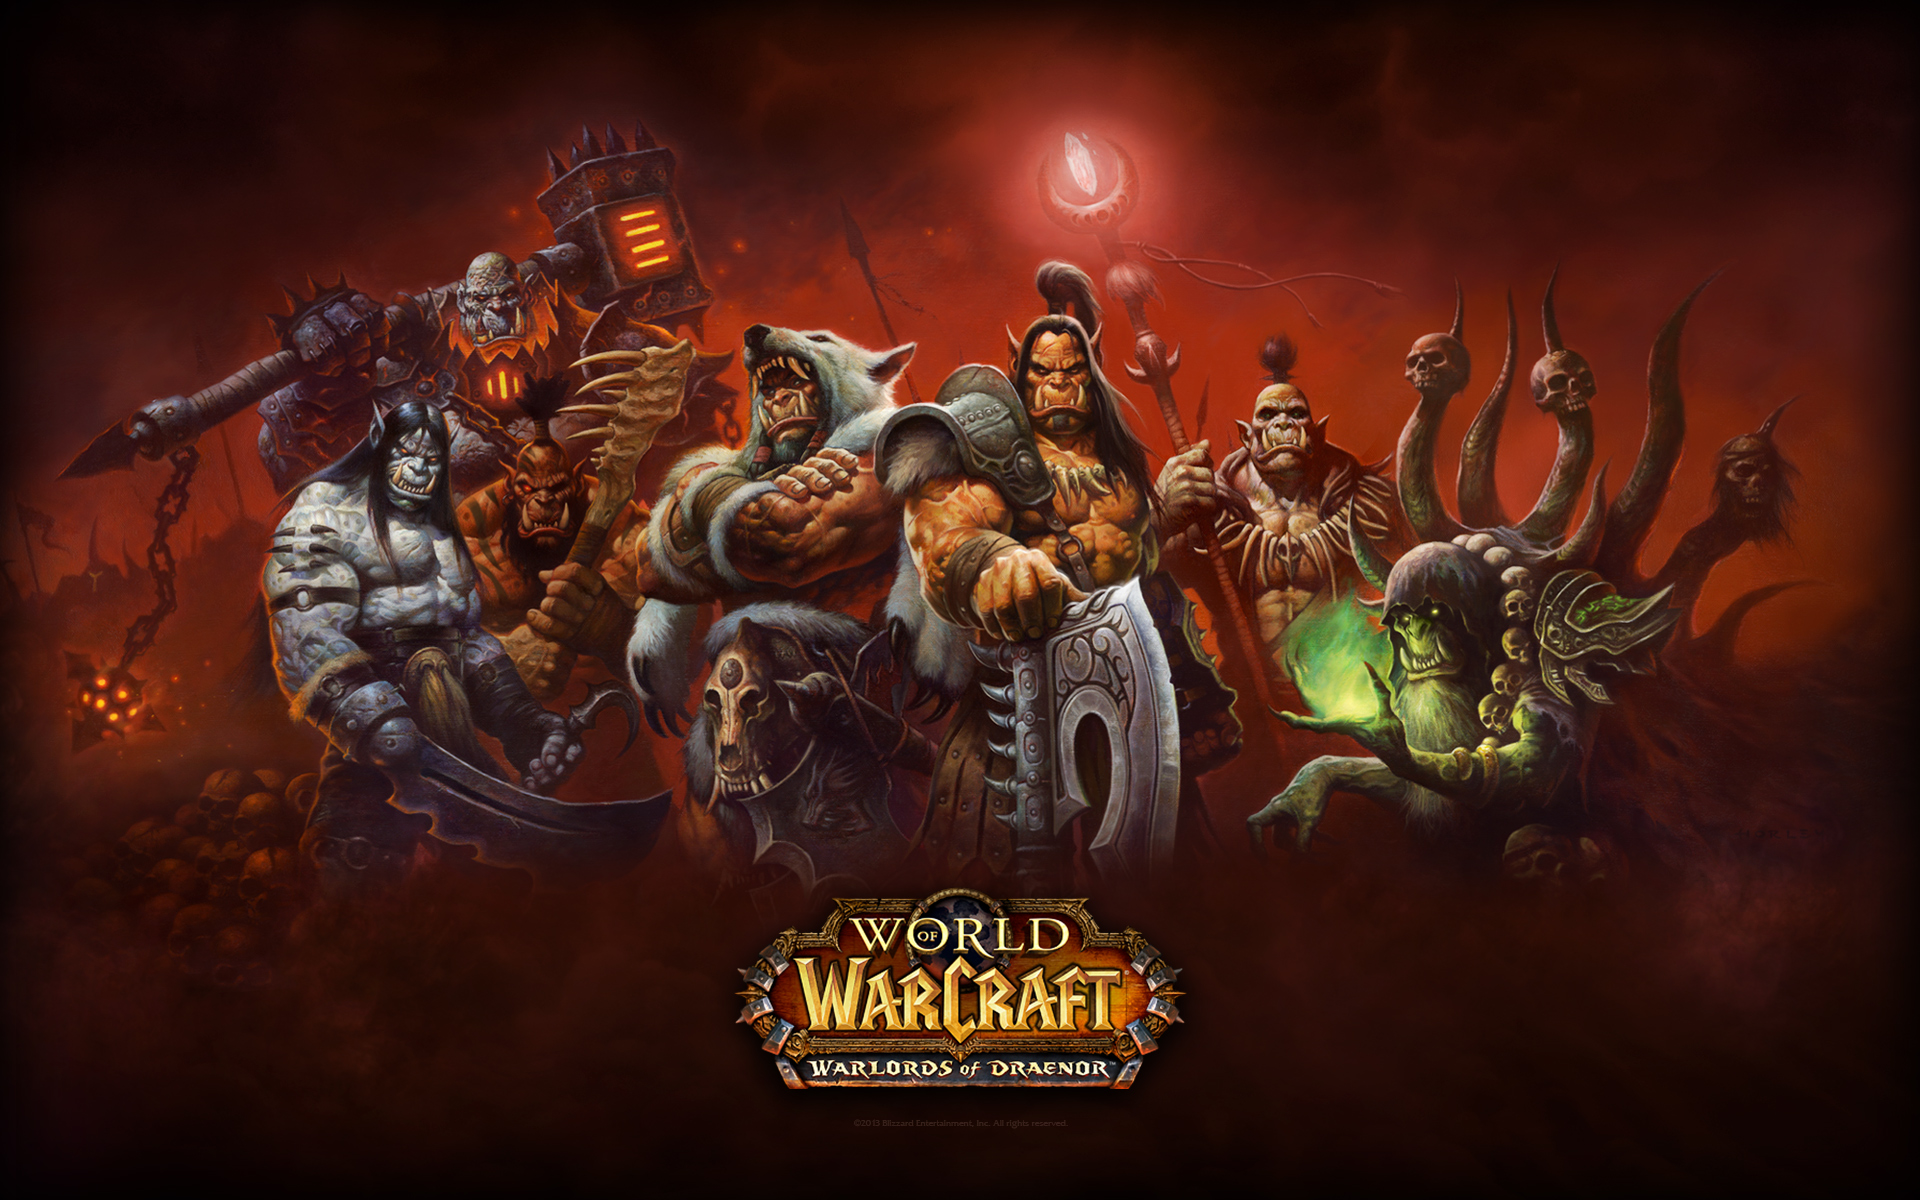 World of Warcraft Warlords of Dreanor